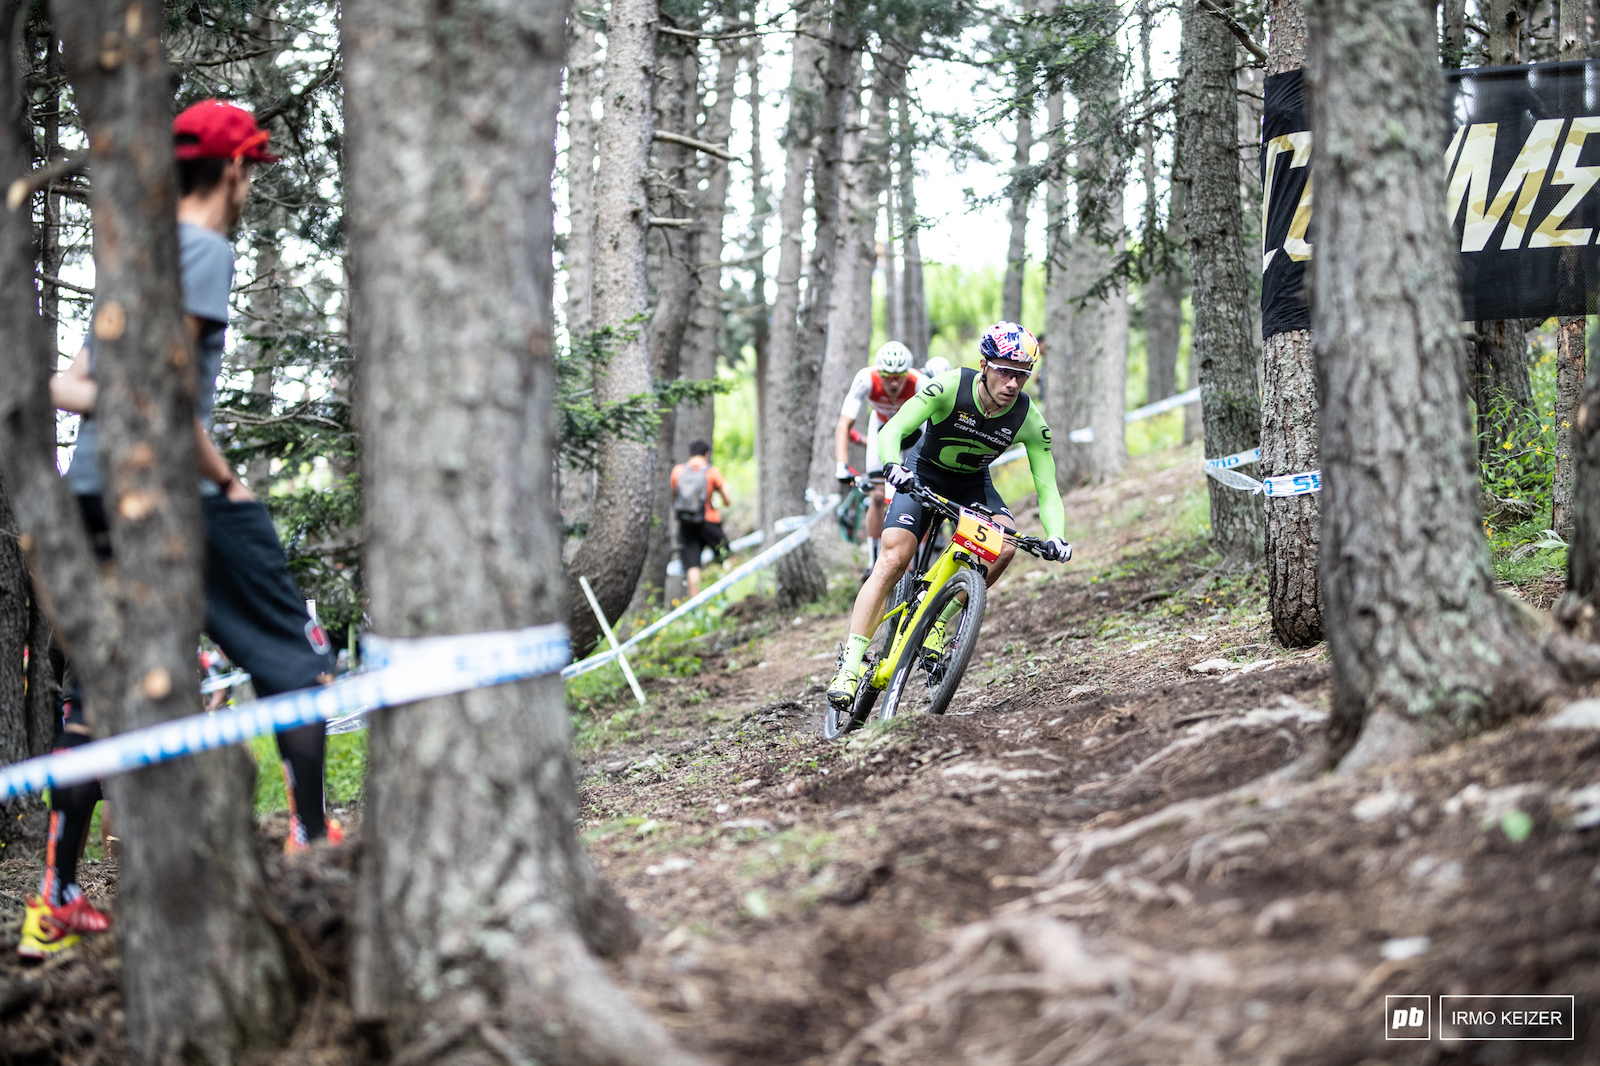 Henrique Avancini leading into the woods.